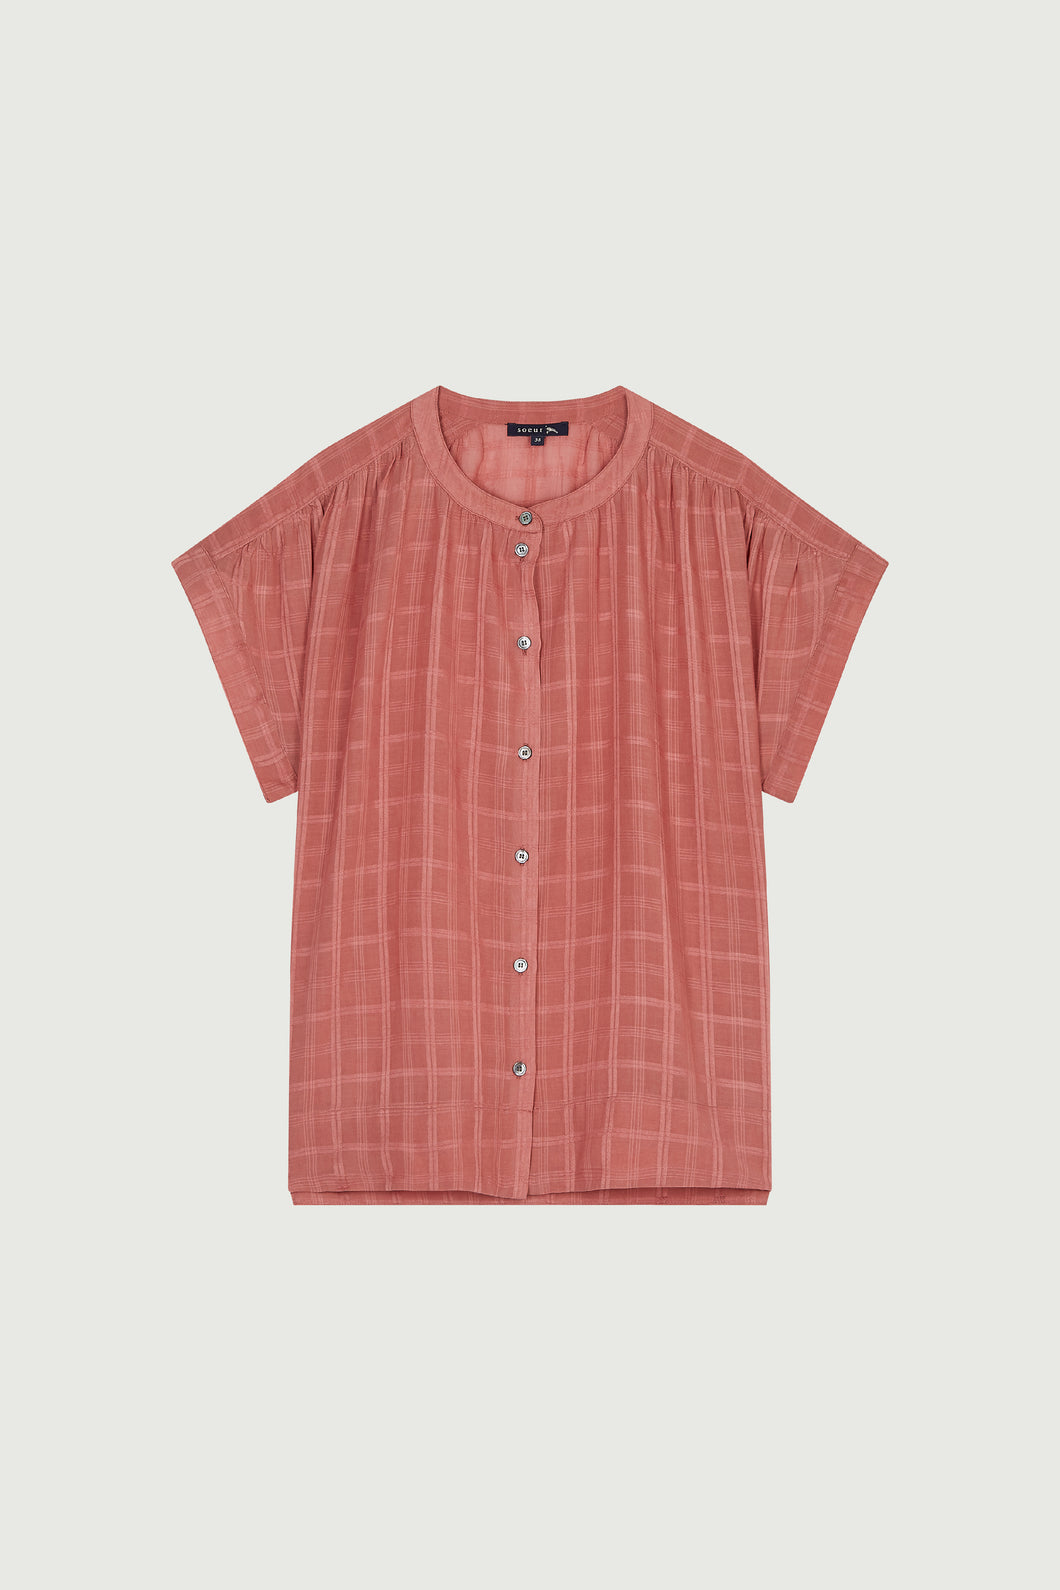 Mirmande rose shirt